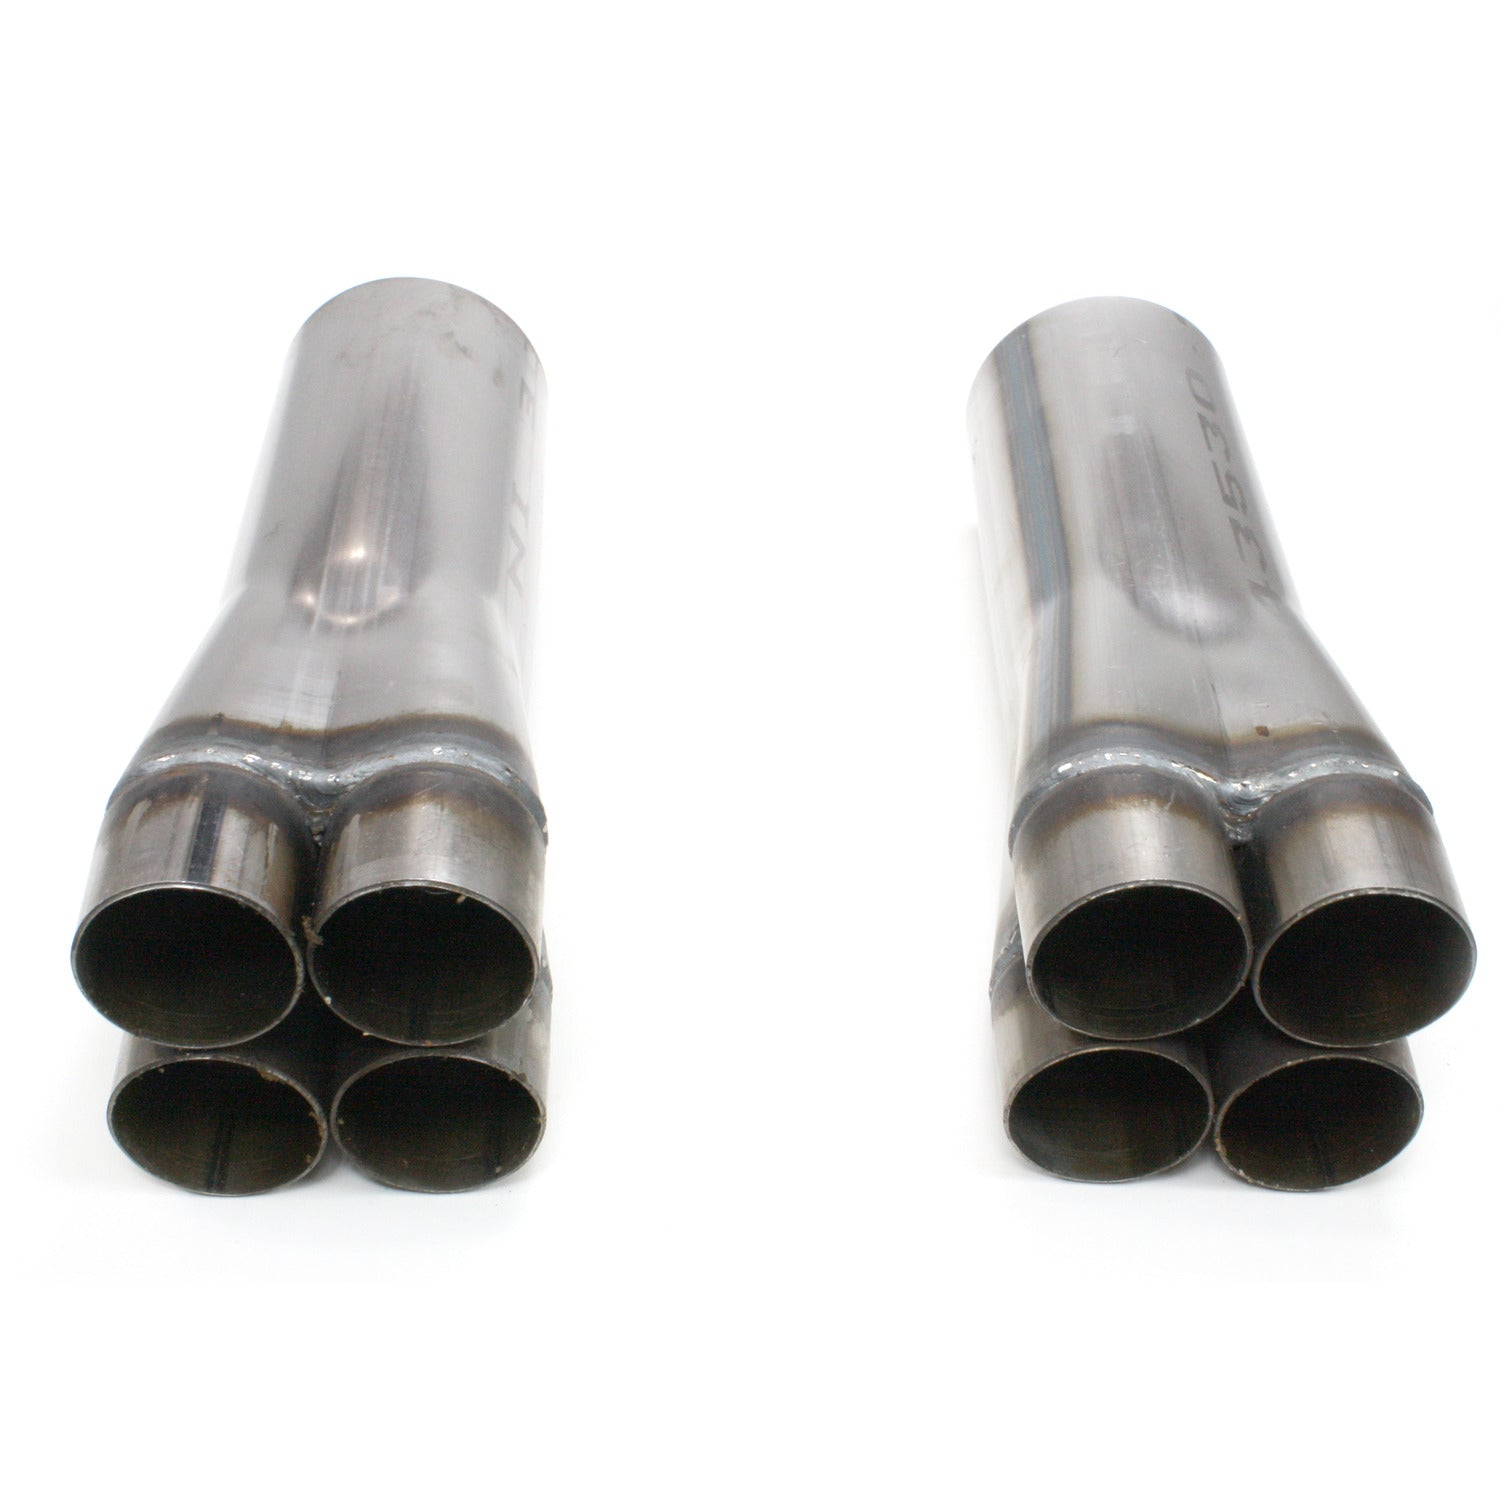 "Patriot Exhaust H7695 4-1 Slip-On Collectors 2 3/8""x4 1/2""x12"""